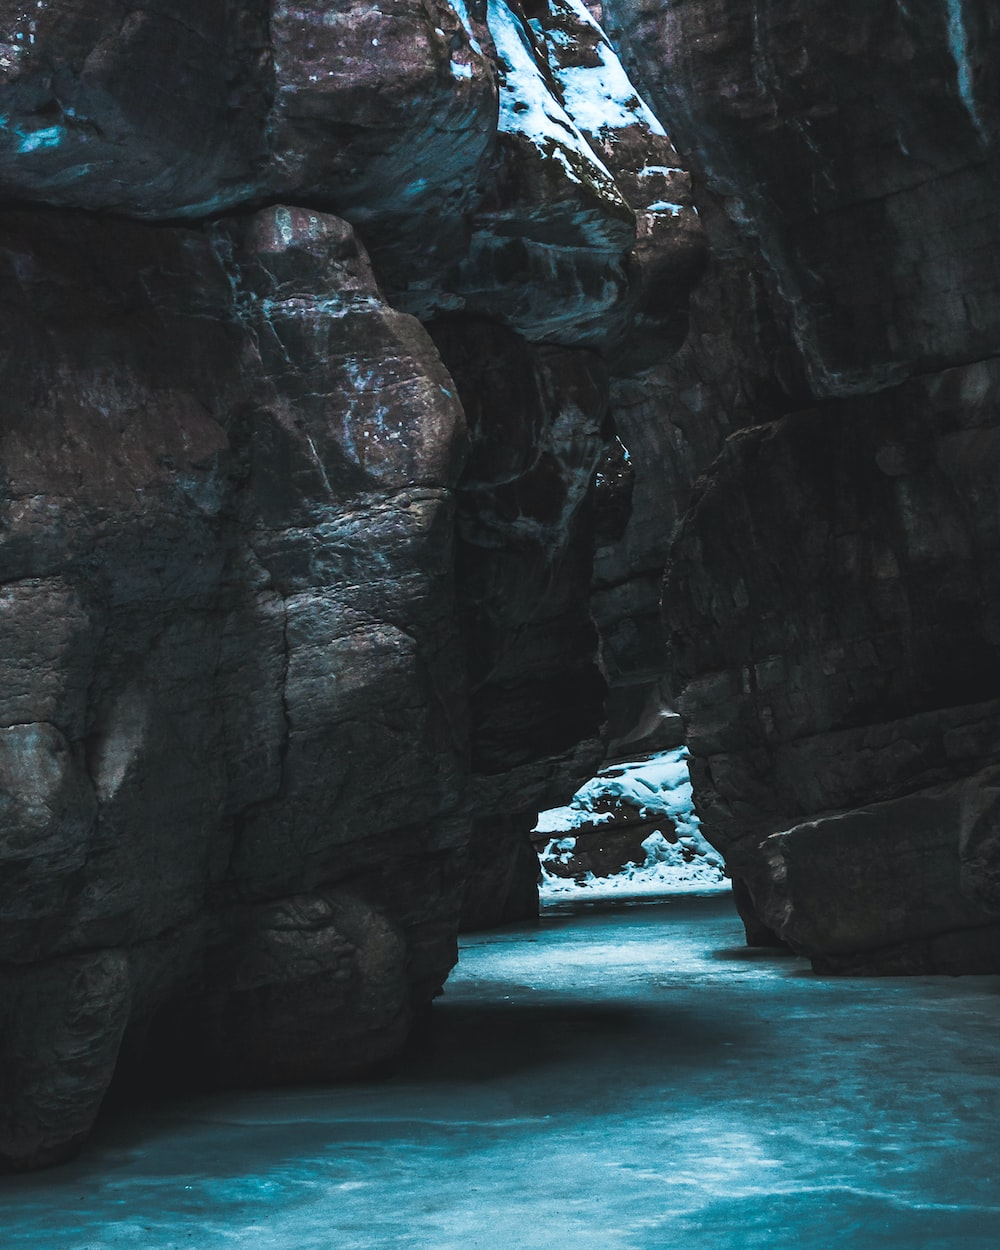 cave on body of water